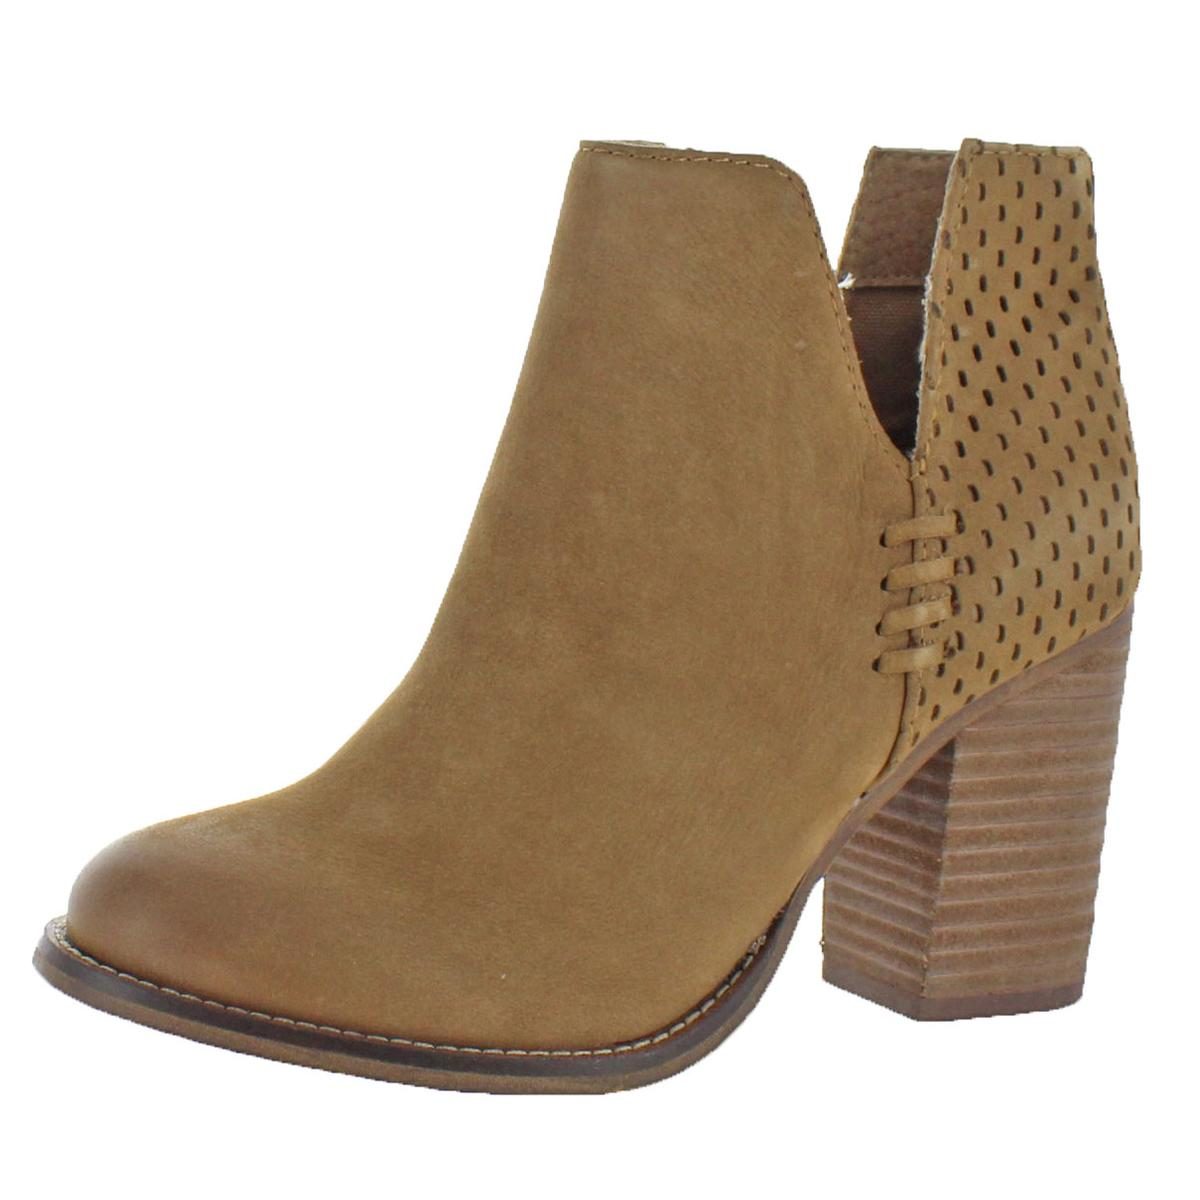 2d993198c Steve Madden Womens Sydelle Ankle Stacked Heel Fashion Booties Heels ...